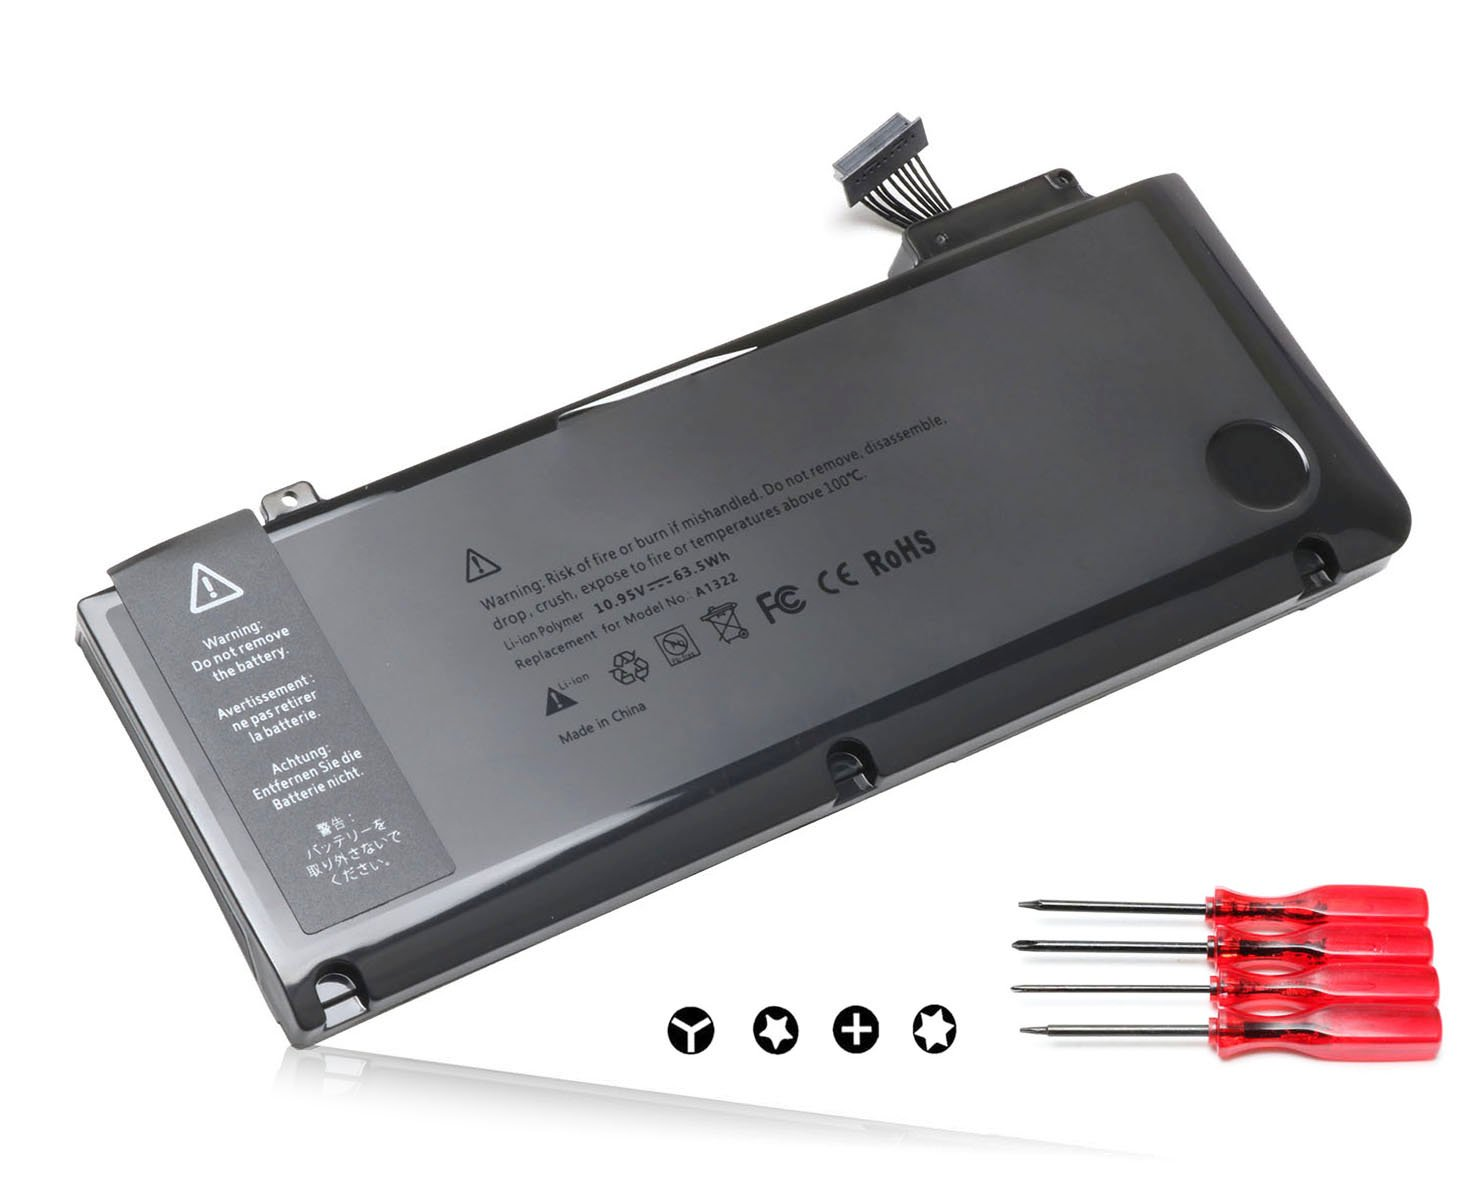 Replacement High Performance Laptop Battery for Apple MacBook Pro 13'' A1322 A1278 (2009 2010 2011 Version),Compatible P/N: 661-5229 661-5557 020-6547-A 020-6765-A